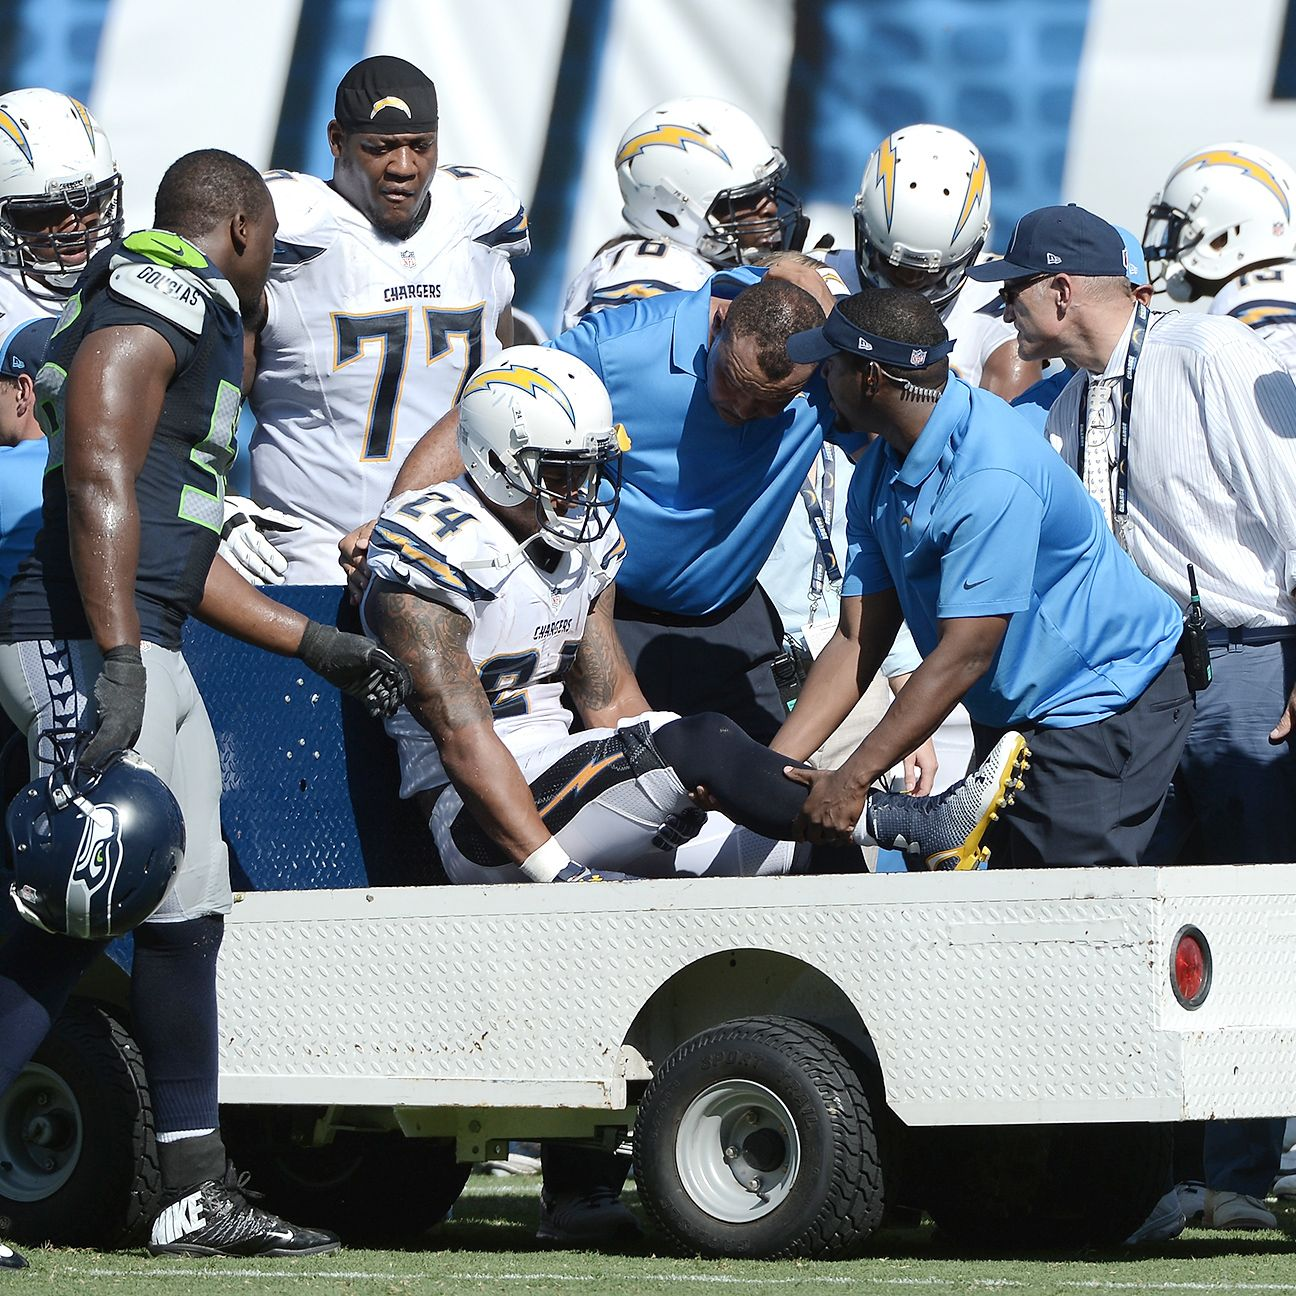 San Diego Chargers Attendance: Ryan Mathews Of San Diego Chargers Has Sprained MCL, Could